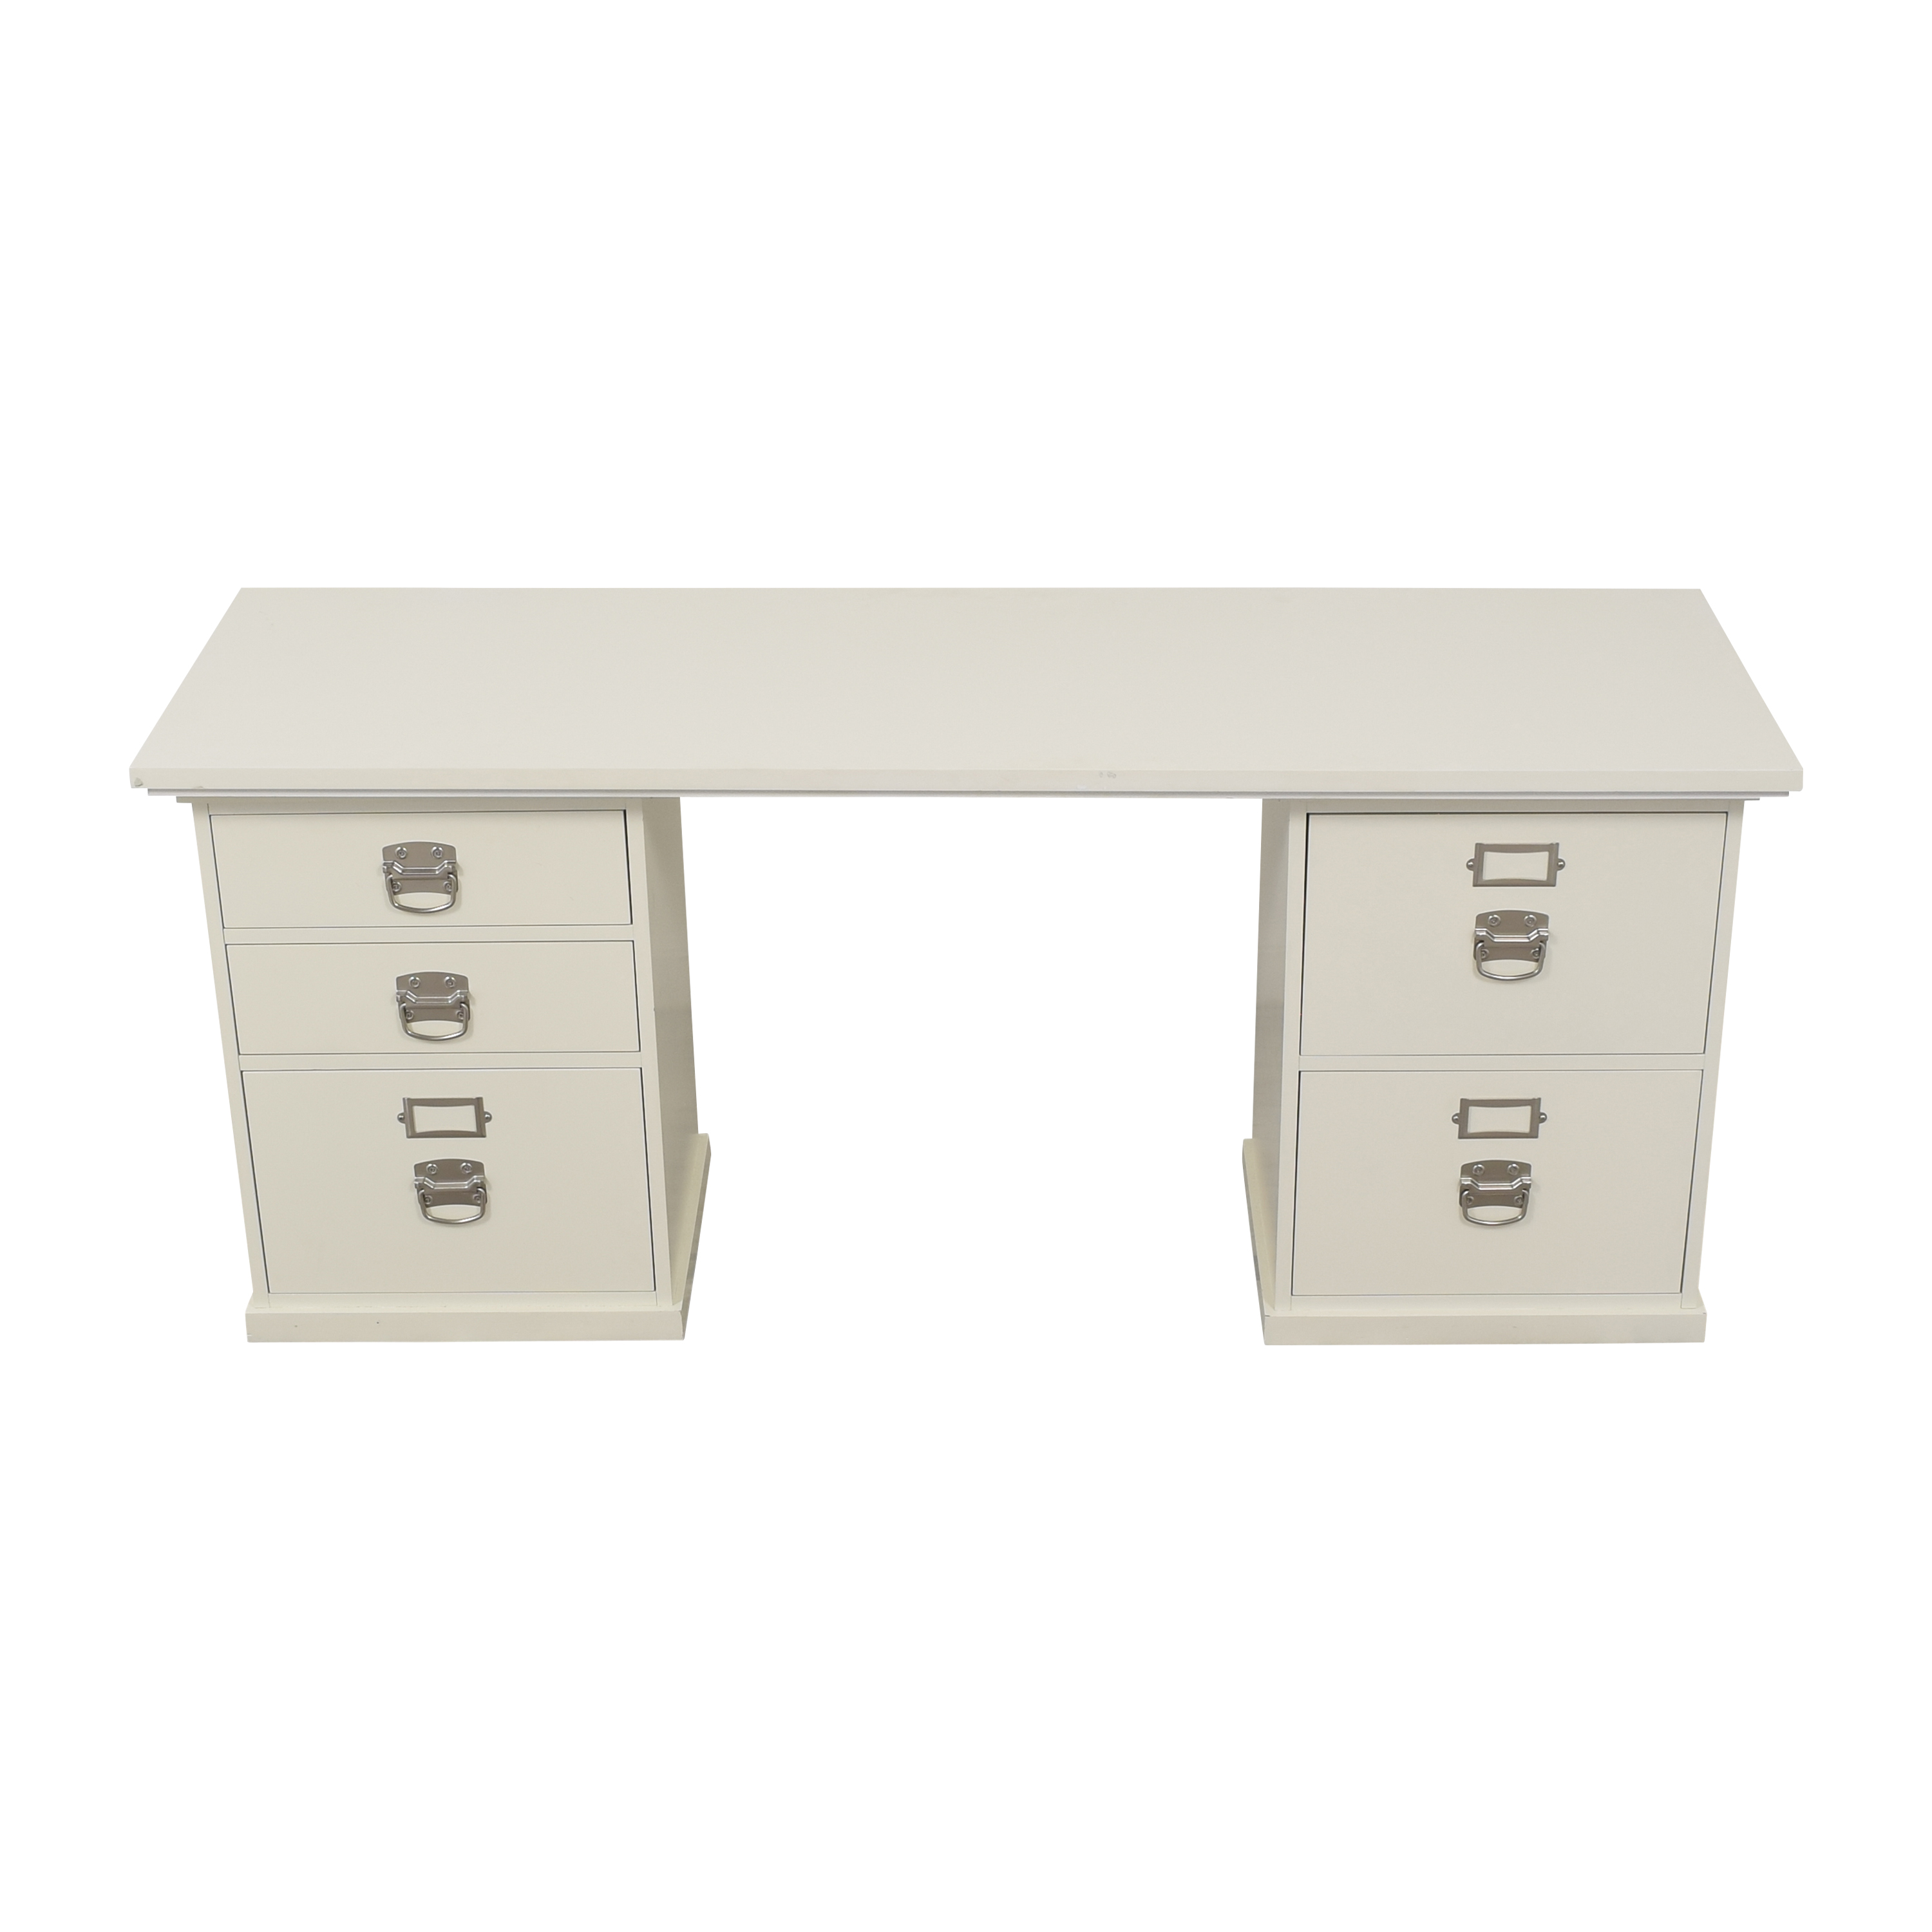 shop Pottery Barn Pottery Barn Bedford Desk with Five Drawers online